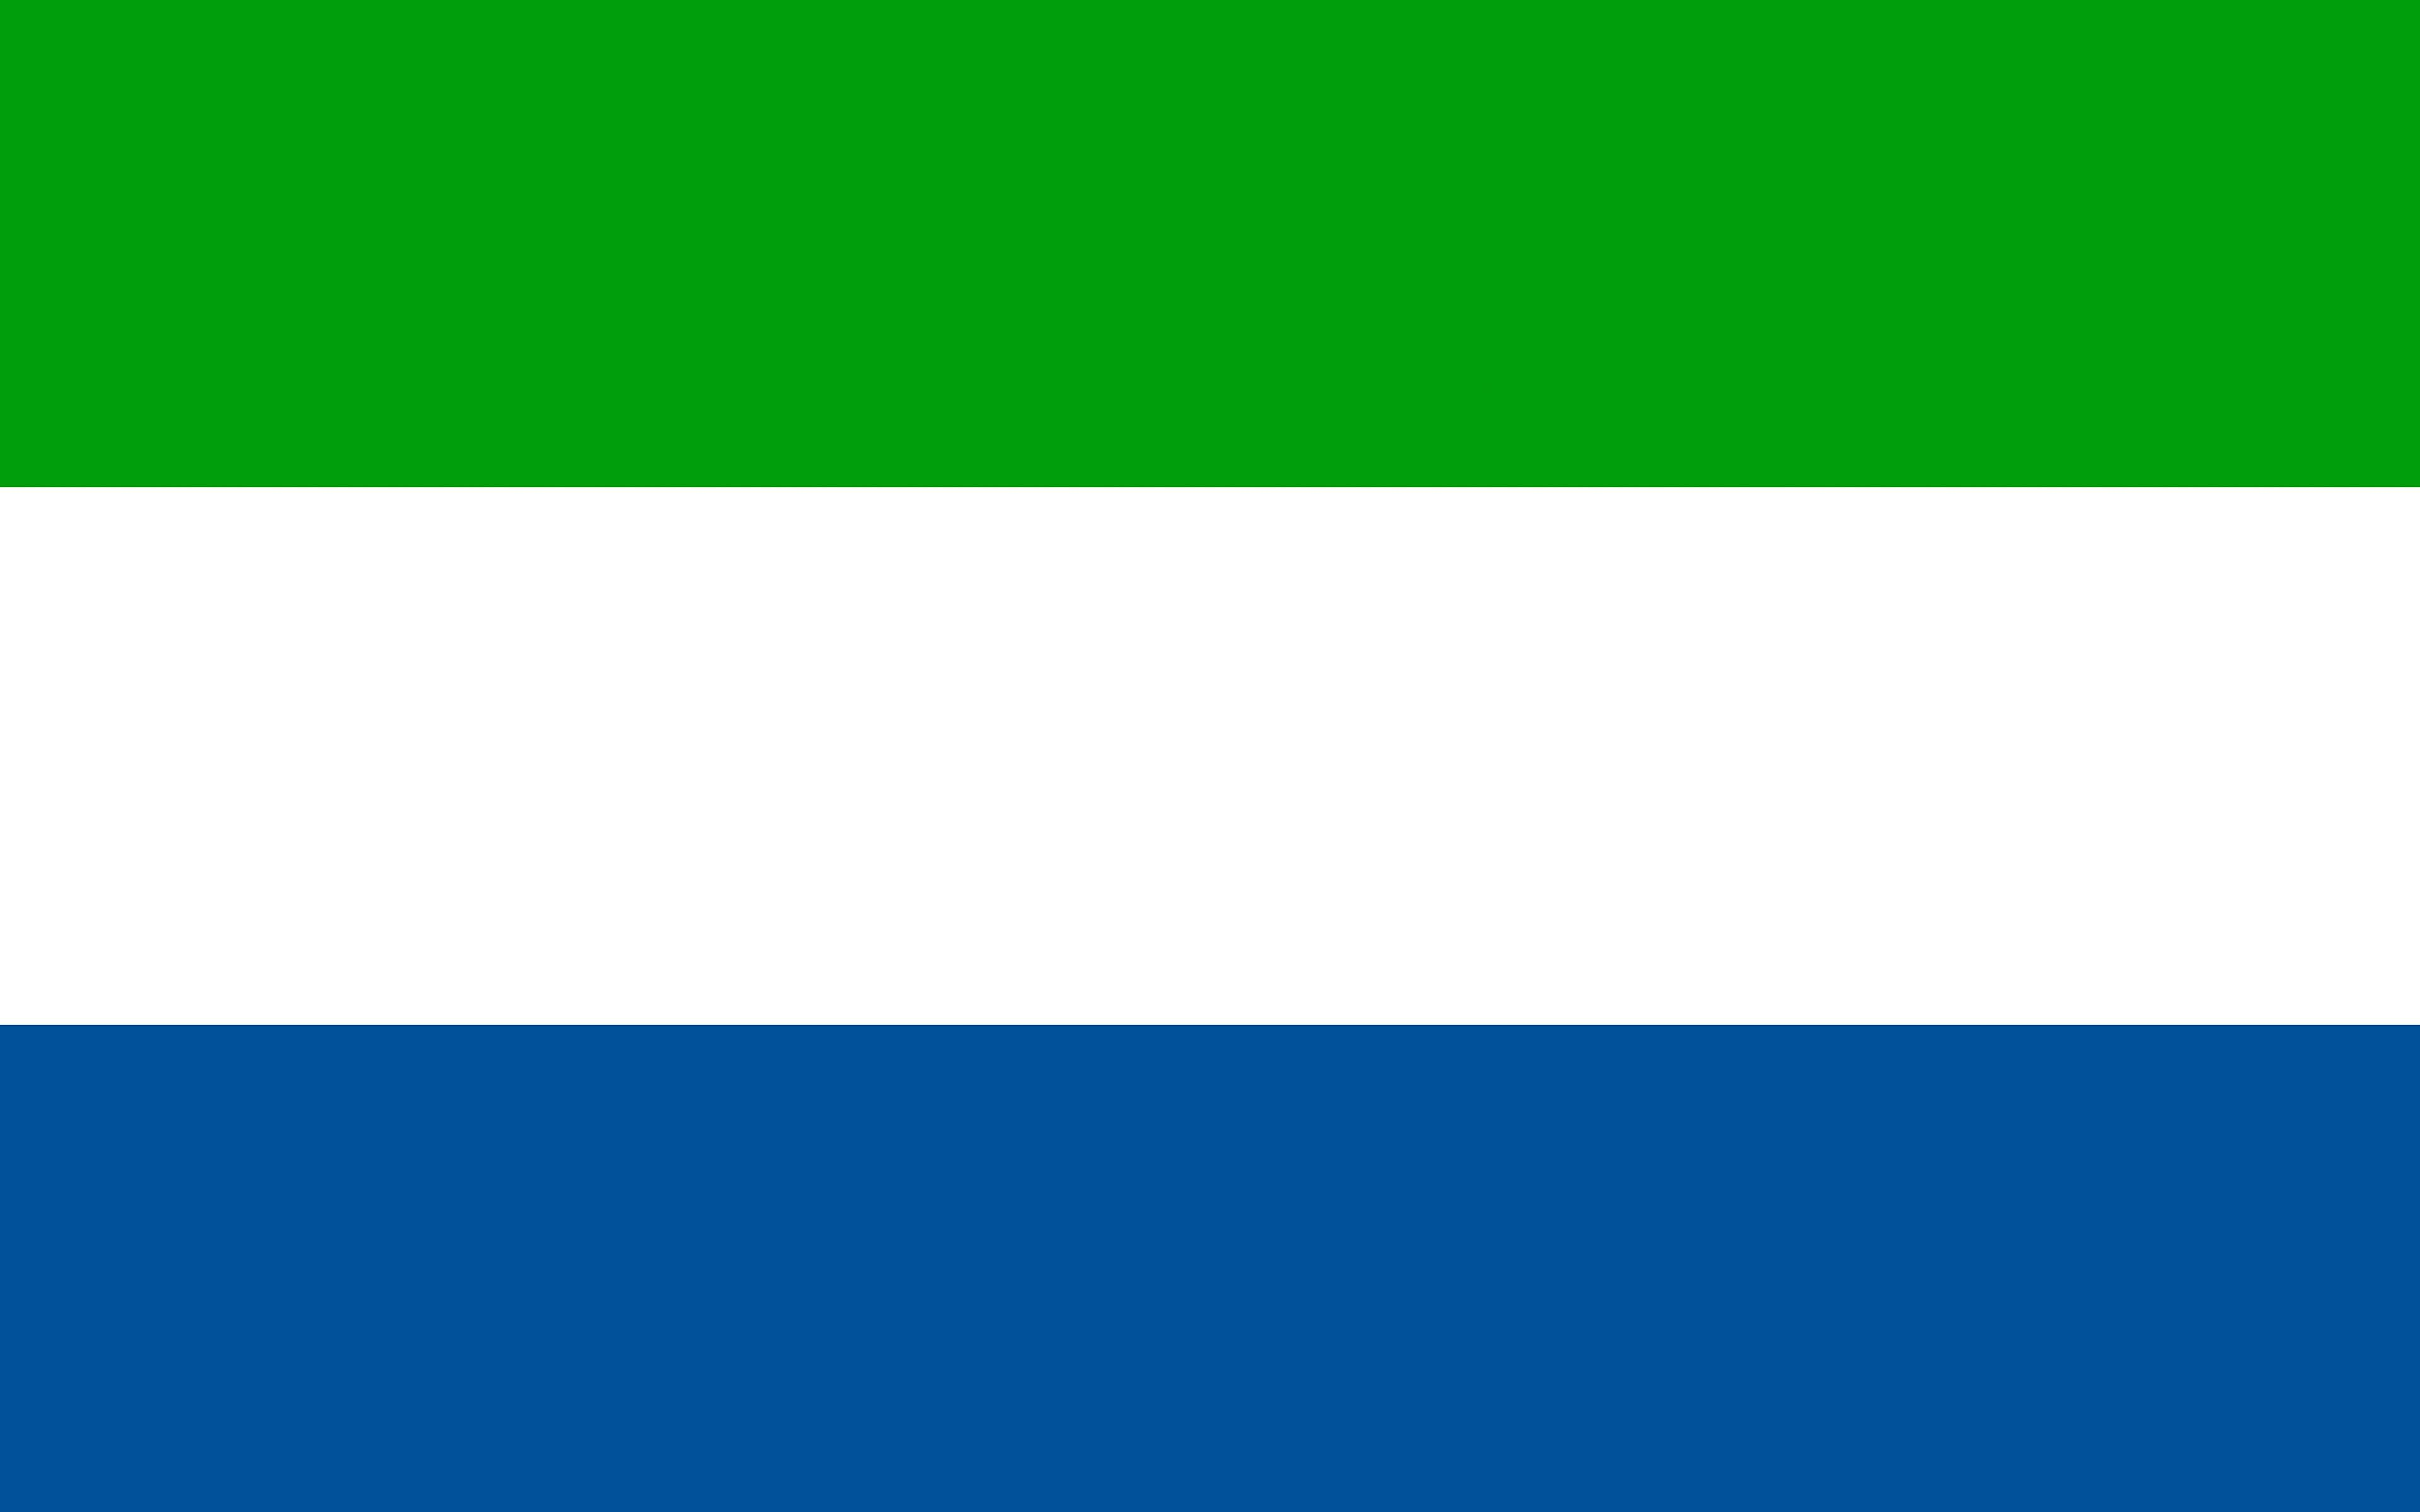 Photos Sierra Leone Flag Stripes 3840x2400